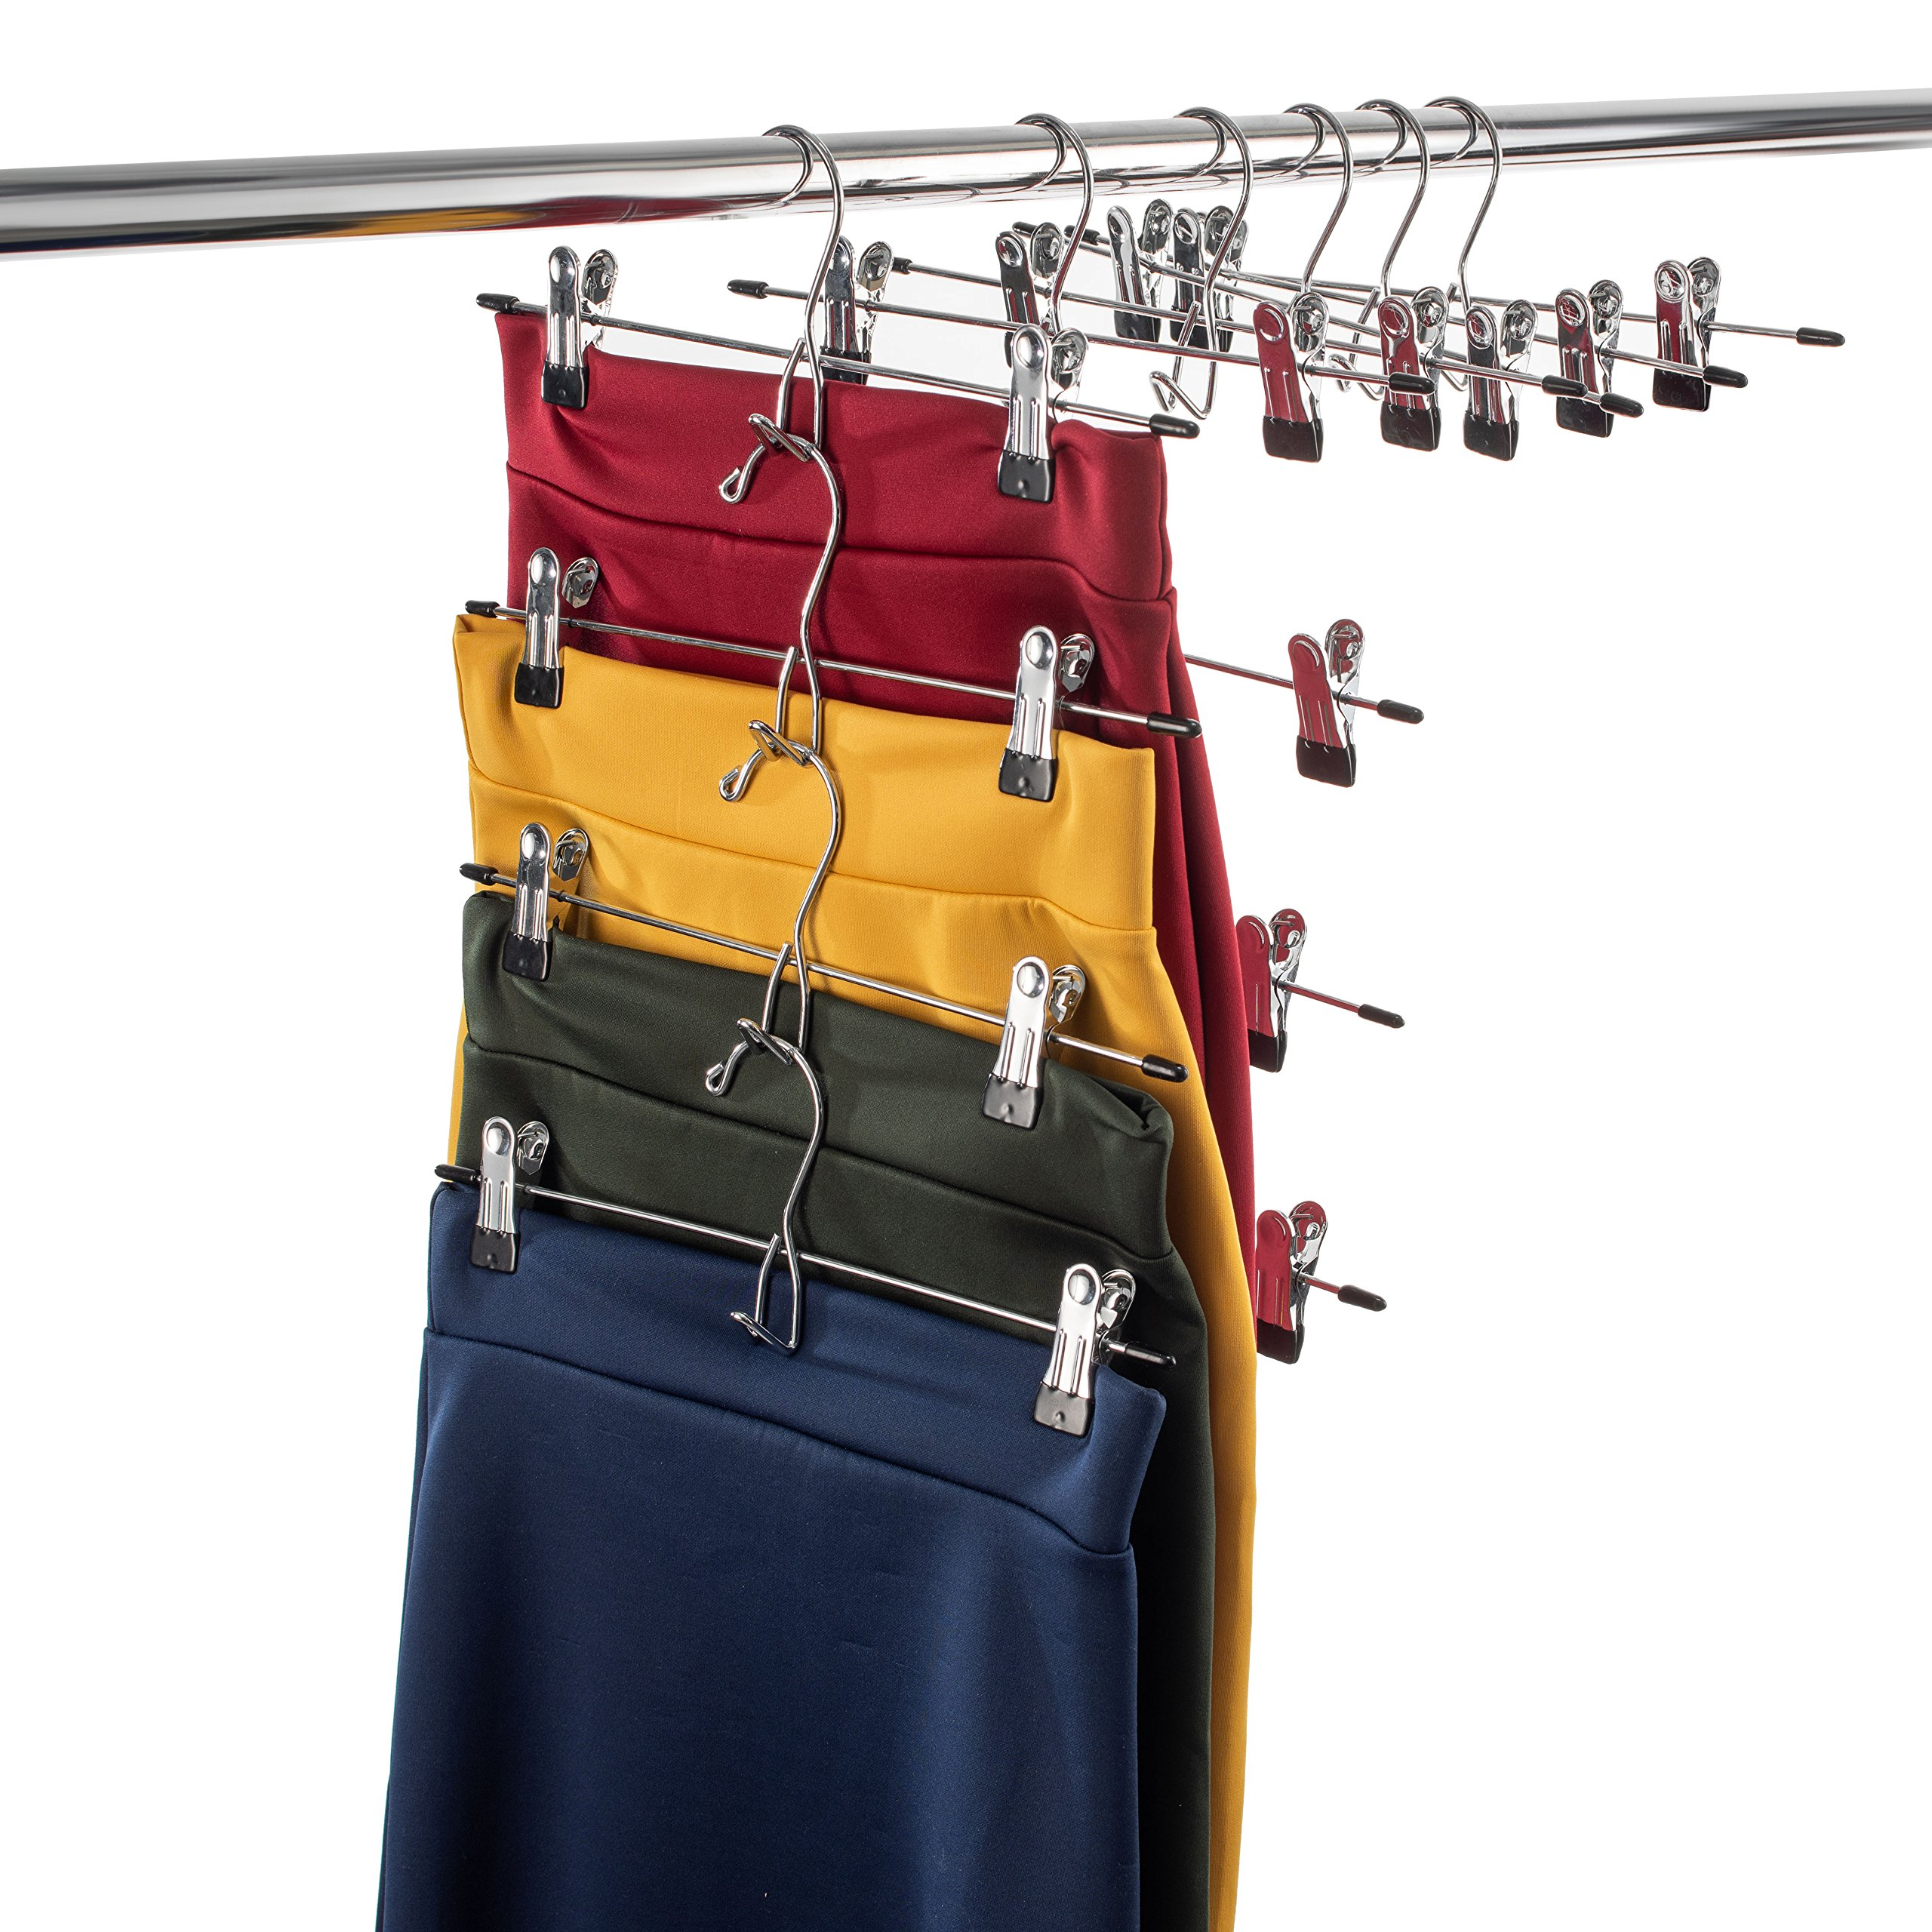 Heavy-Duty Add-On Skirt Hangers with Clips (20 Pack) Multi Stackable Add on Hangers, Adjustable Clip Pants Hanger, Skirt Hanger with Clips, Chrome Hook, Cascading Clip Hanger Jeans, Slacks, Bottoms